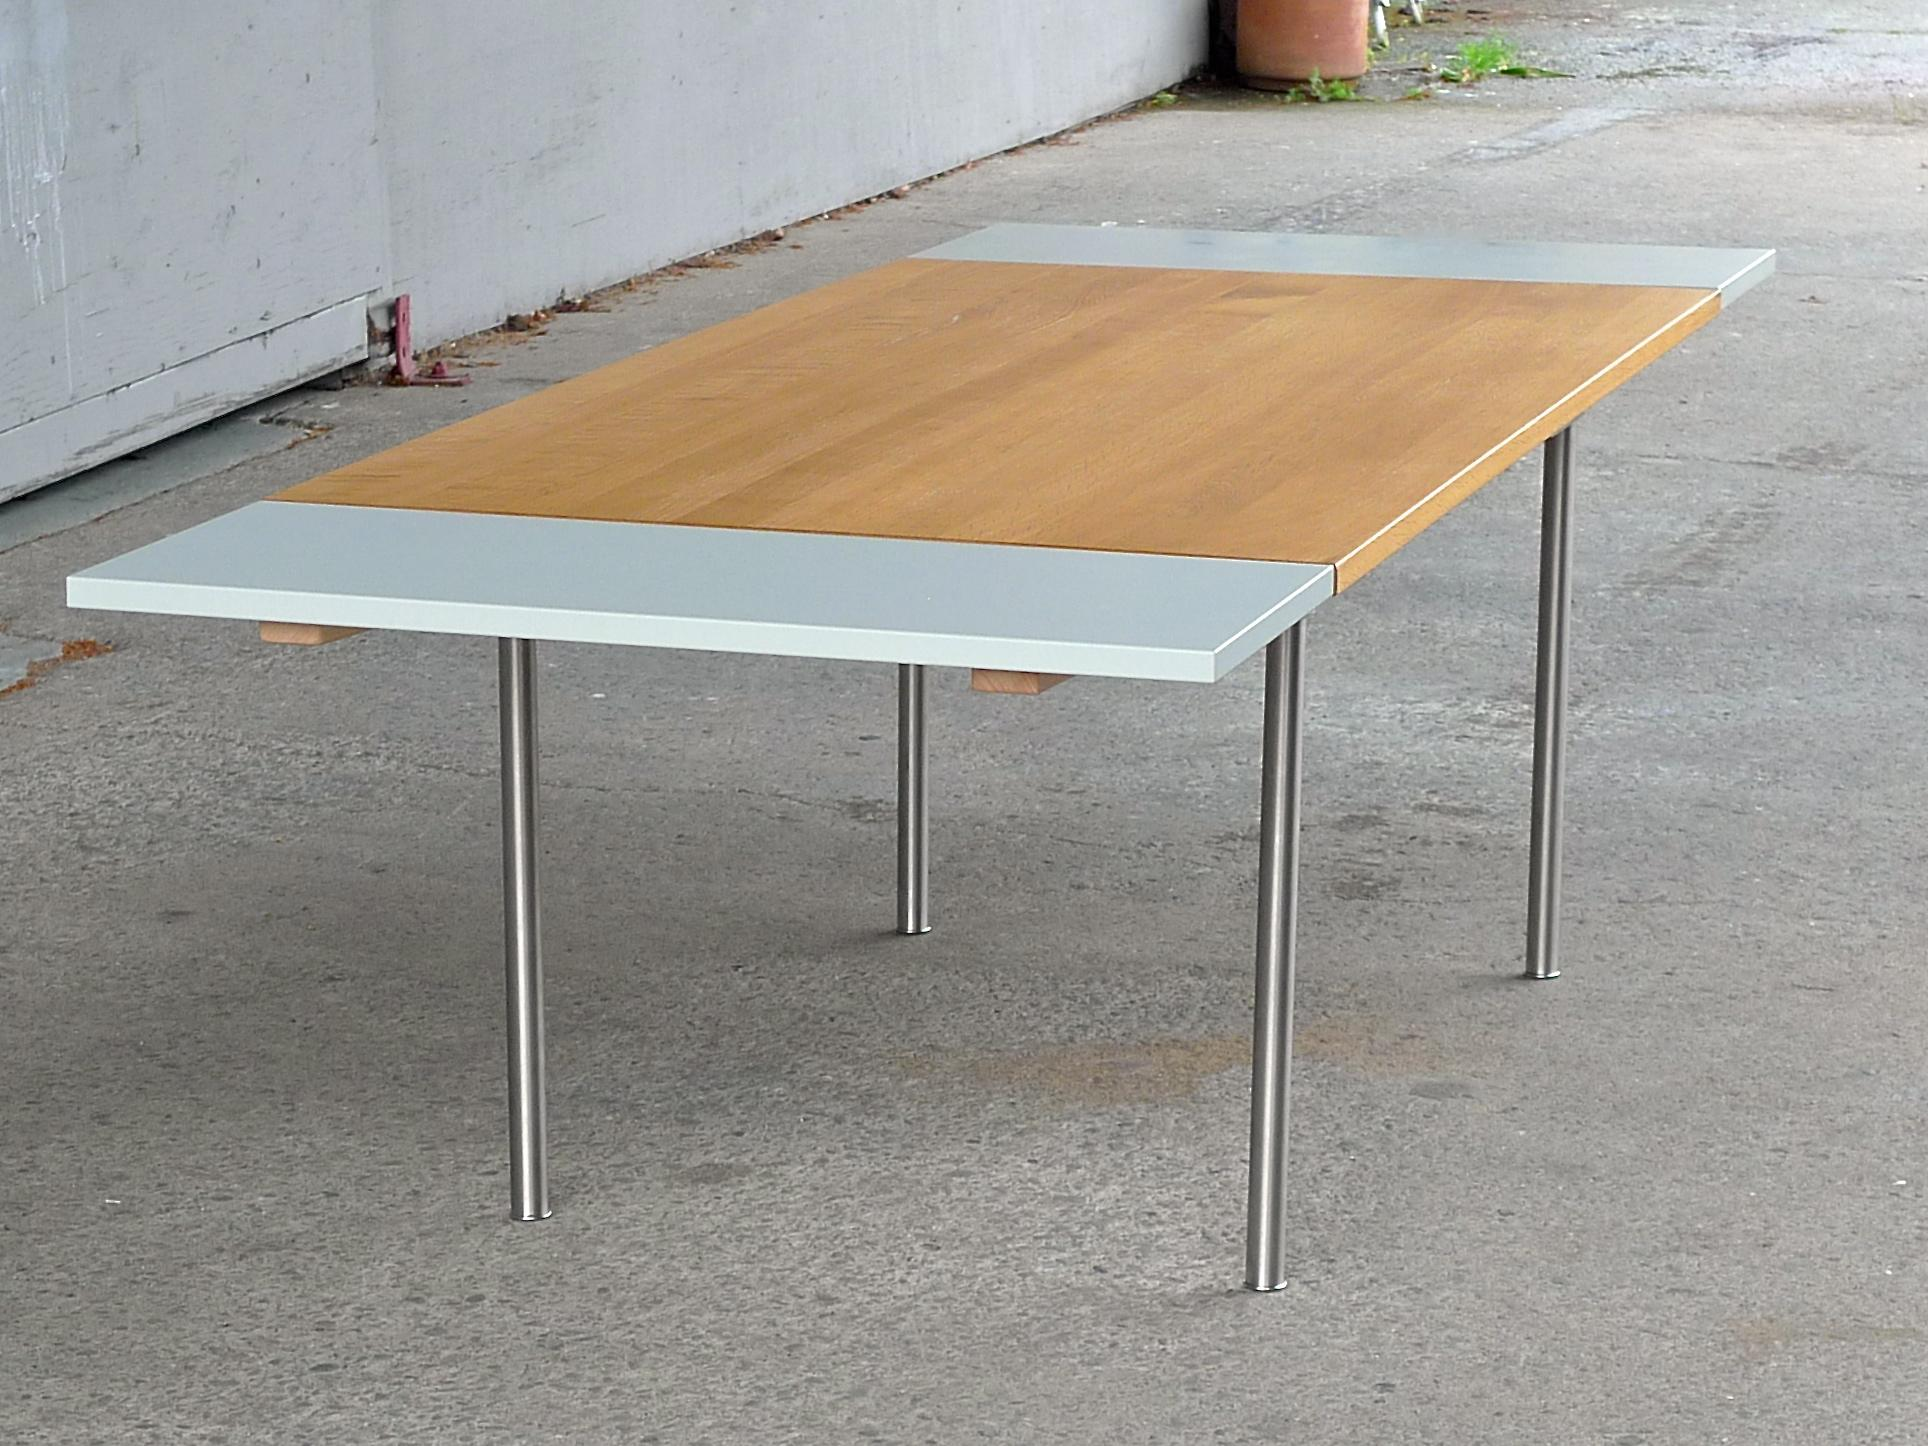 Wegner CH318 Danish Modern Dining Table Or Work Table For Carl Hansen U0026 Son  With Leaf